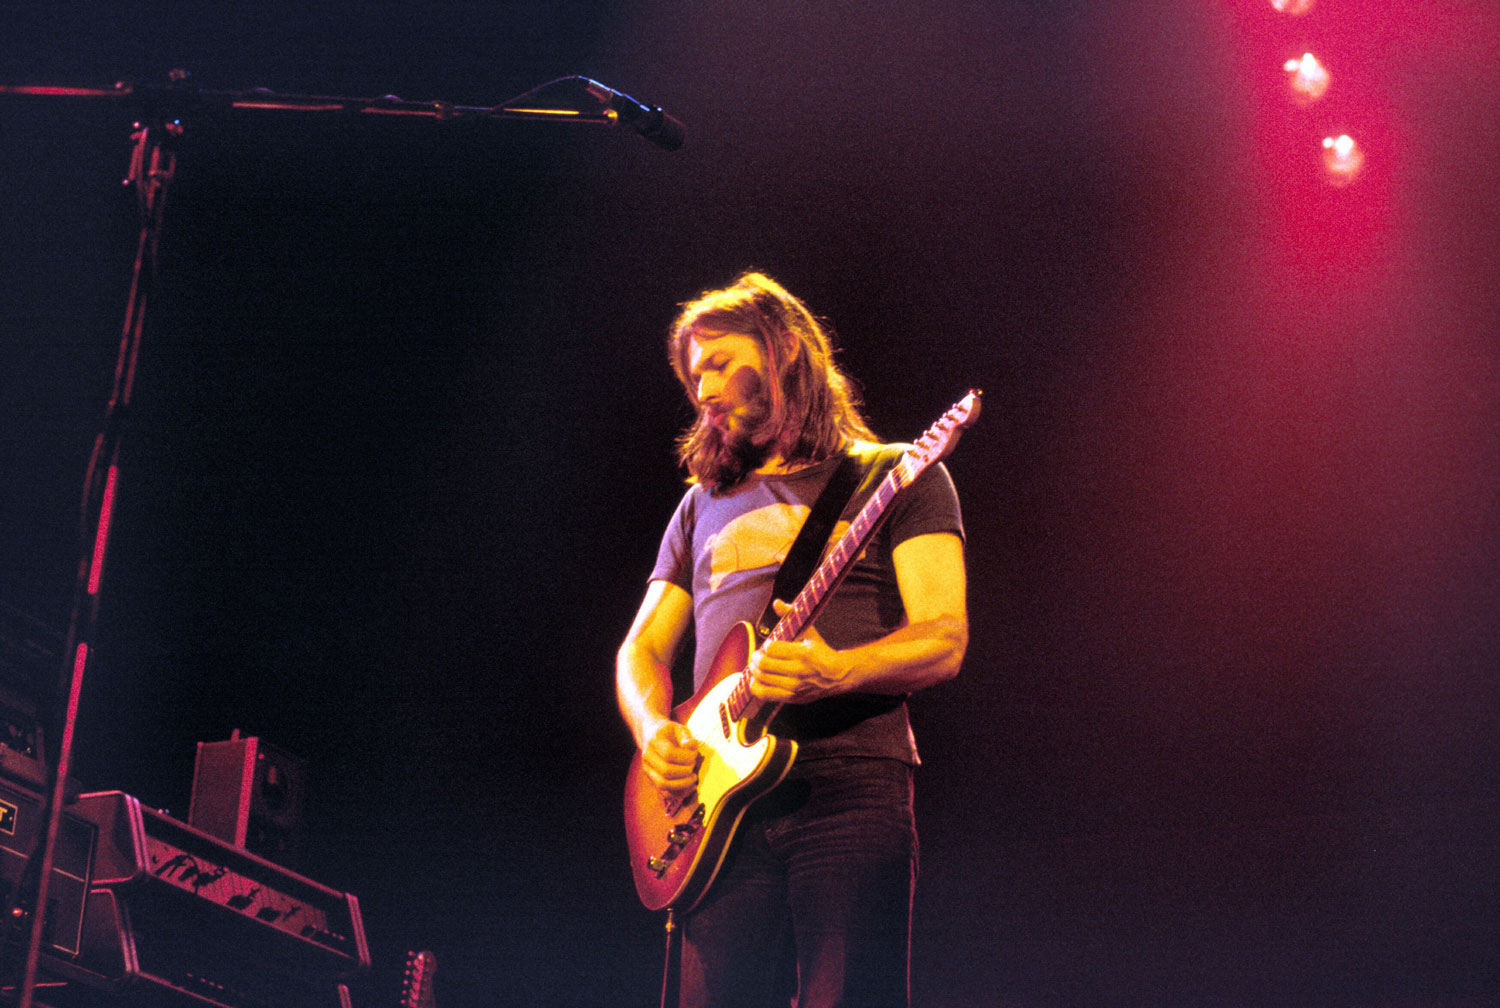 David Gilmour's Guitars Sell for Millions at Charity Auction